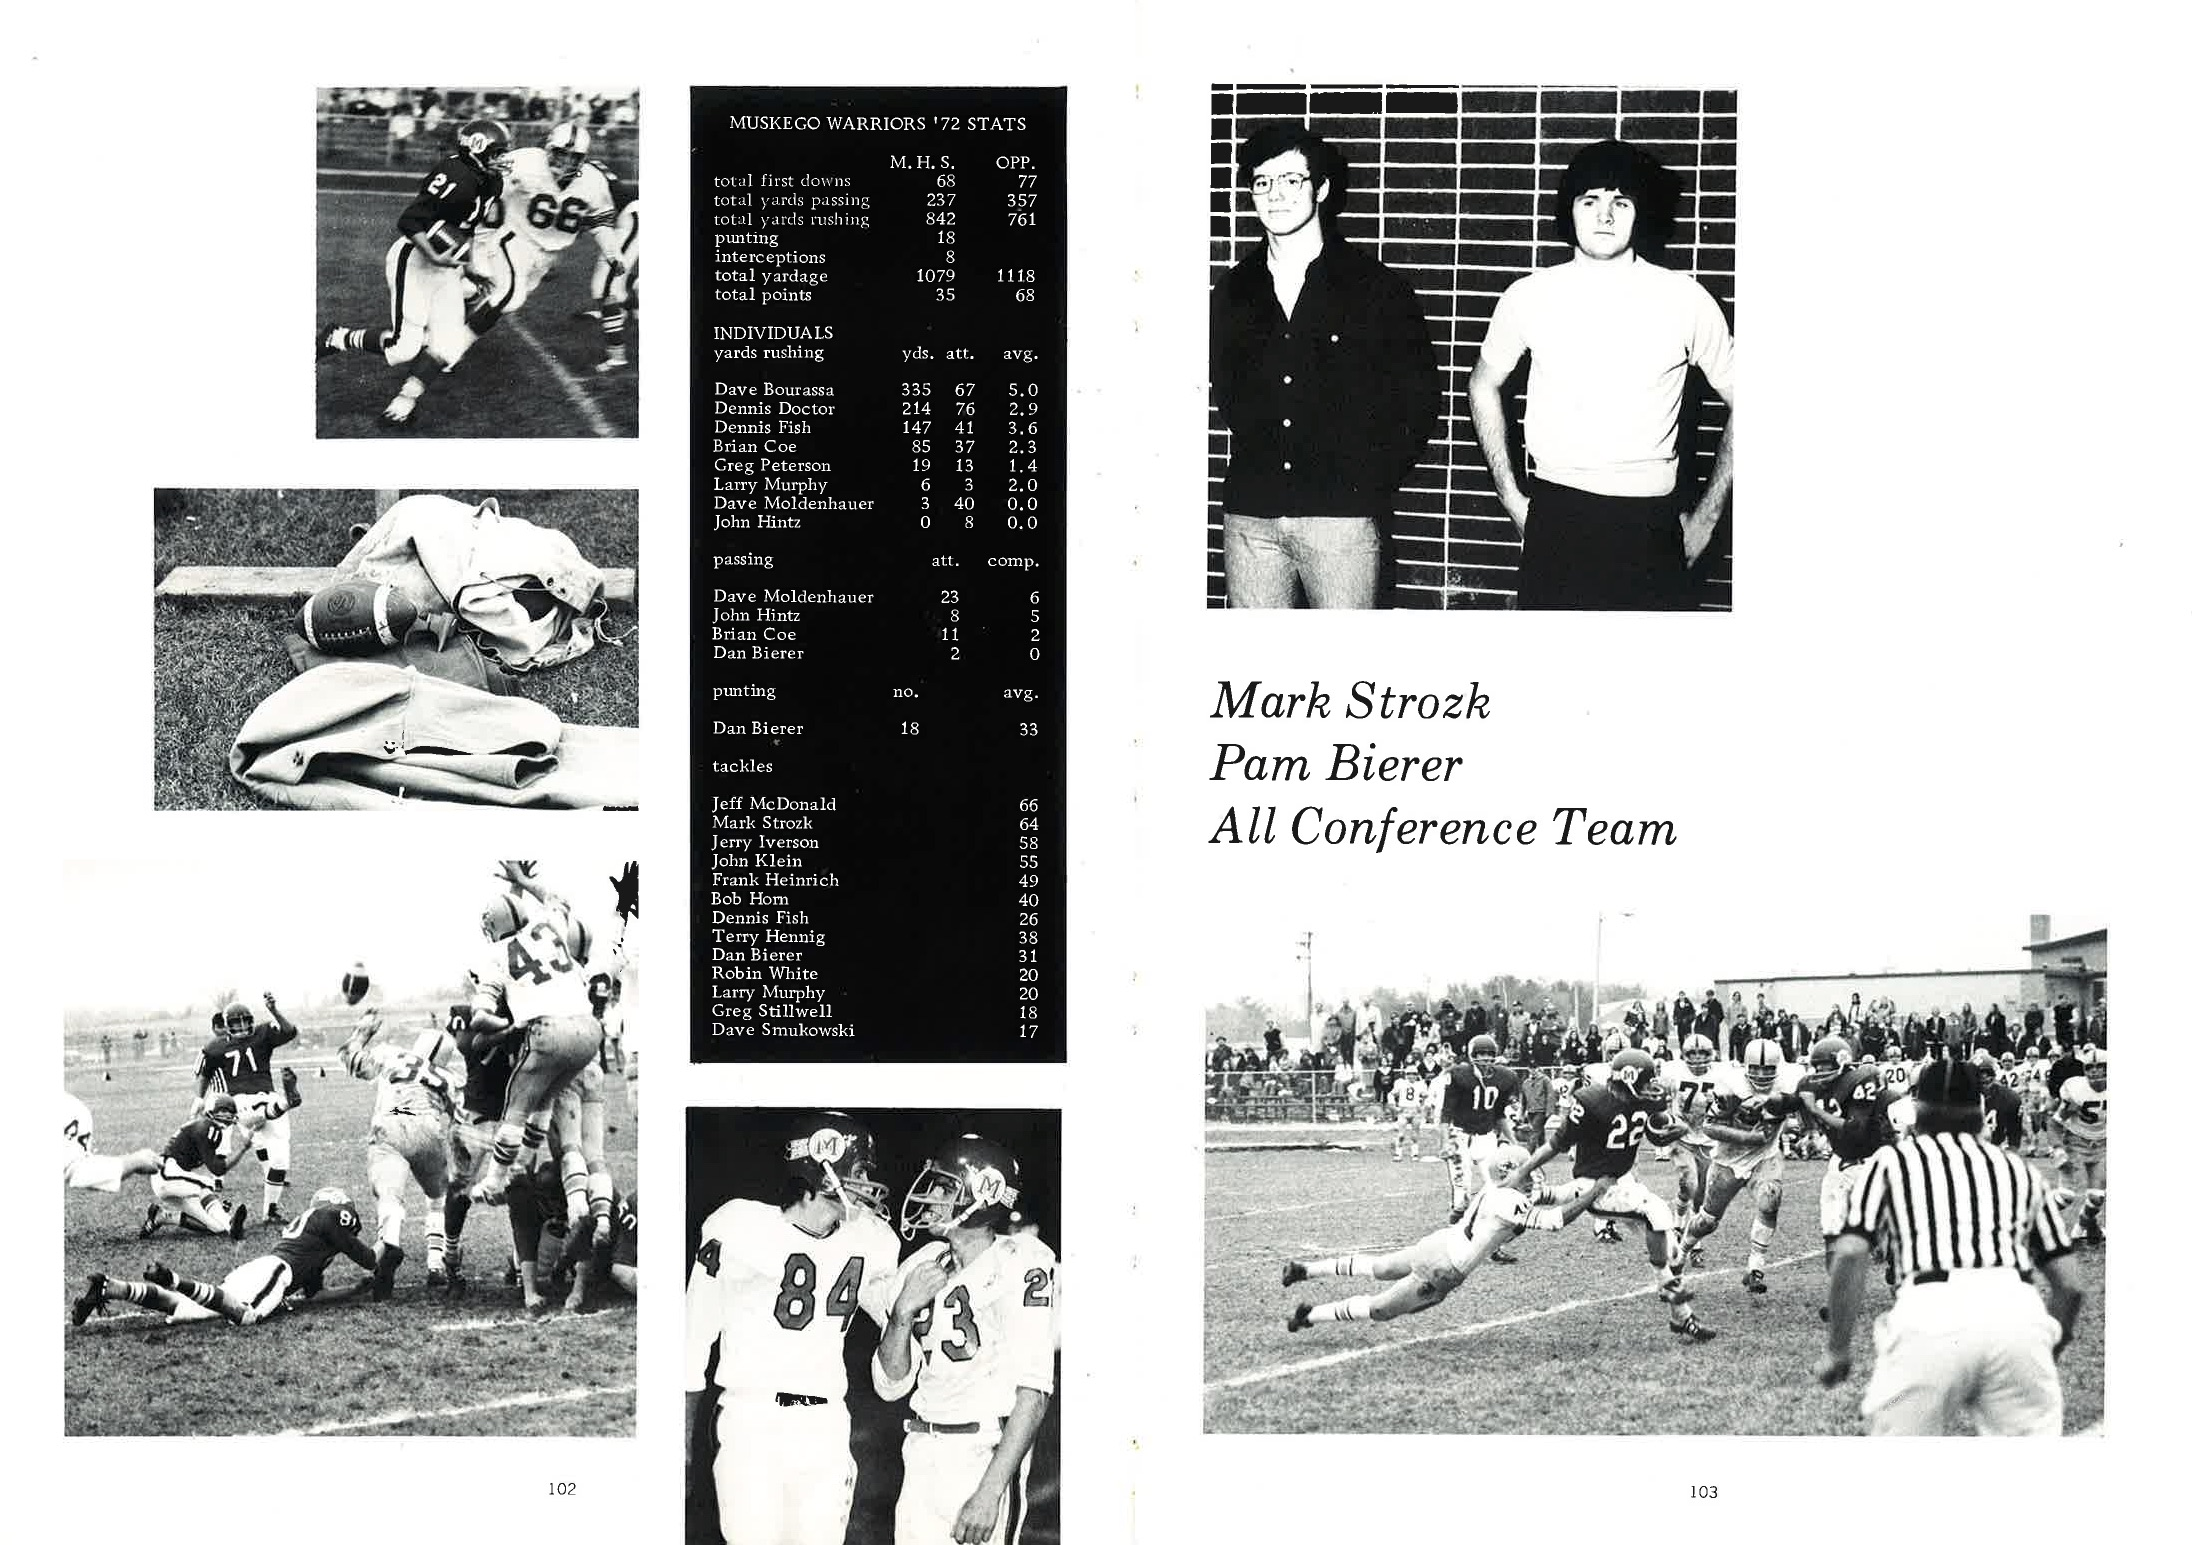 1973_Yearbook_102-103.jpg